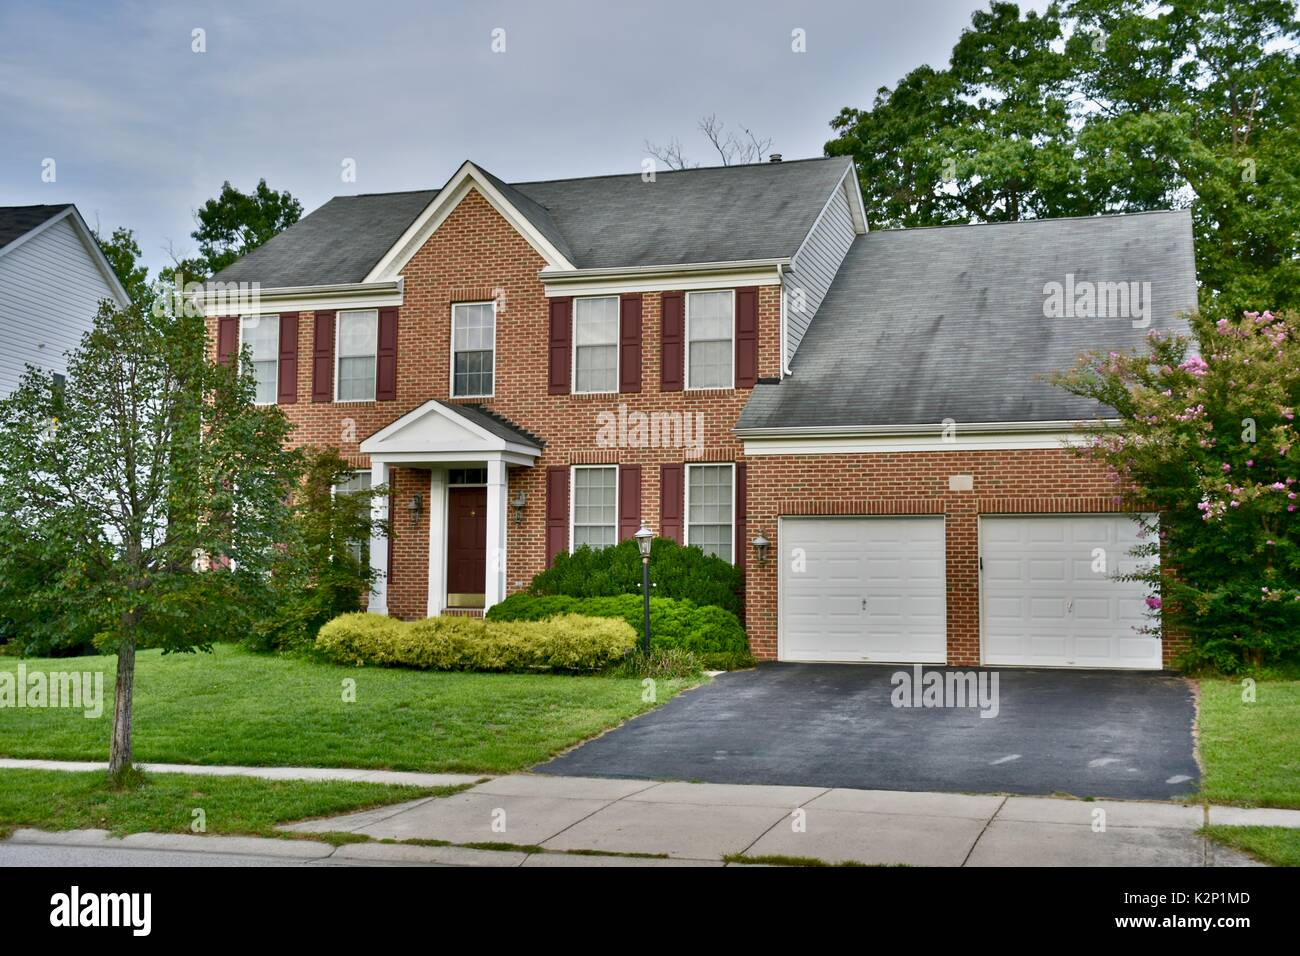 Single family modern stock photos single family modern for Modern single family homes